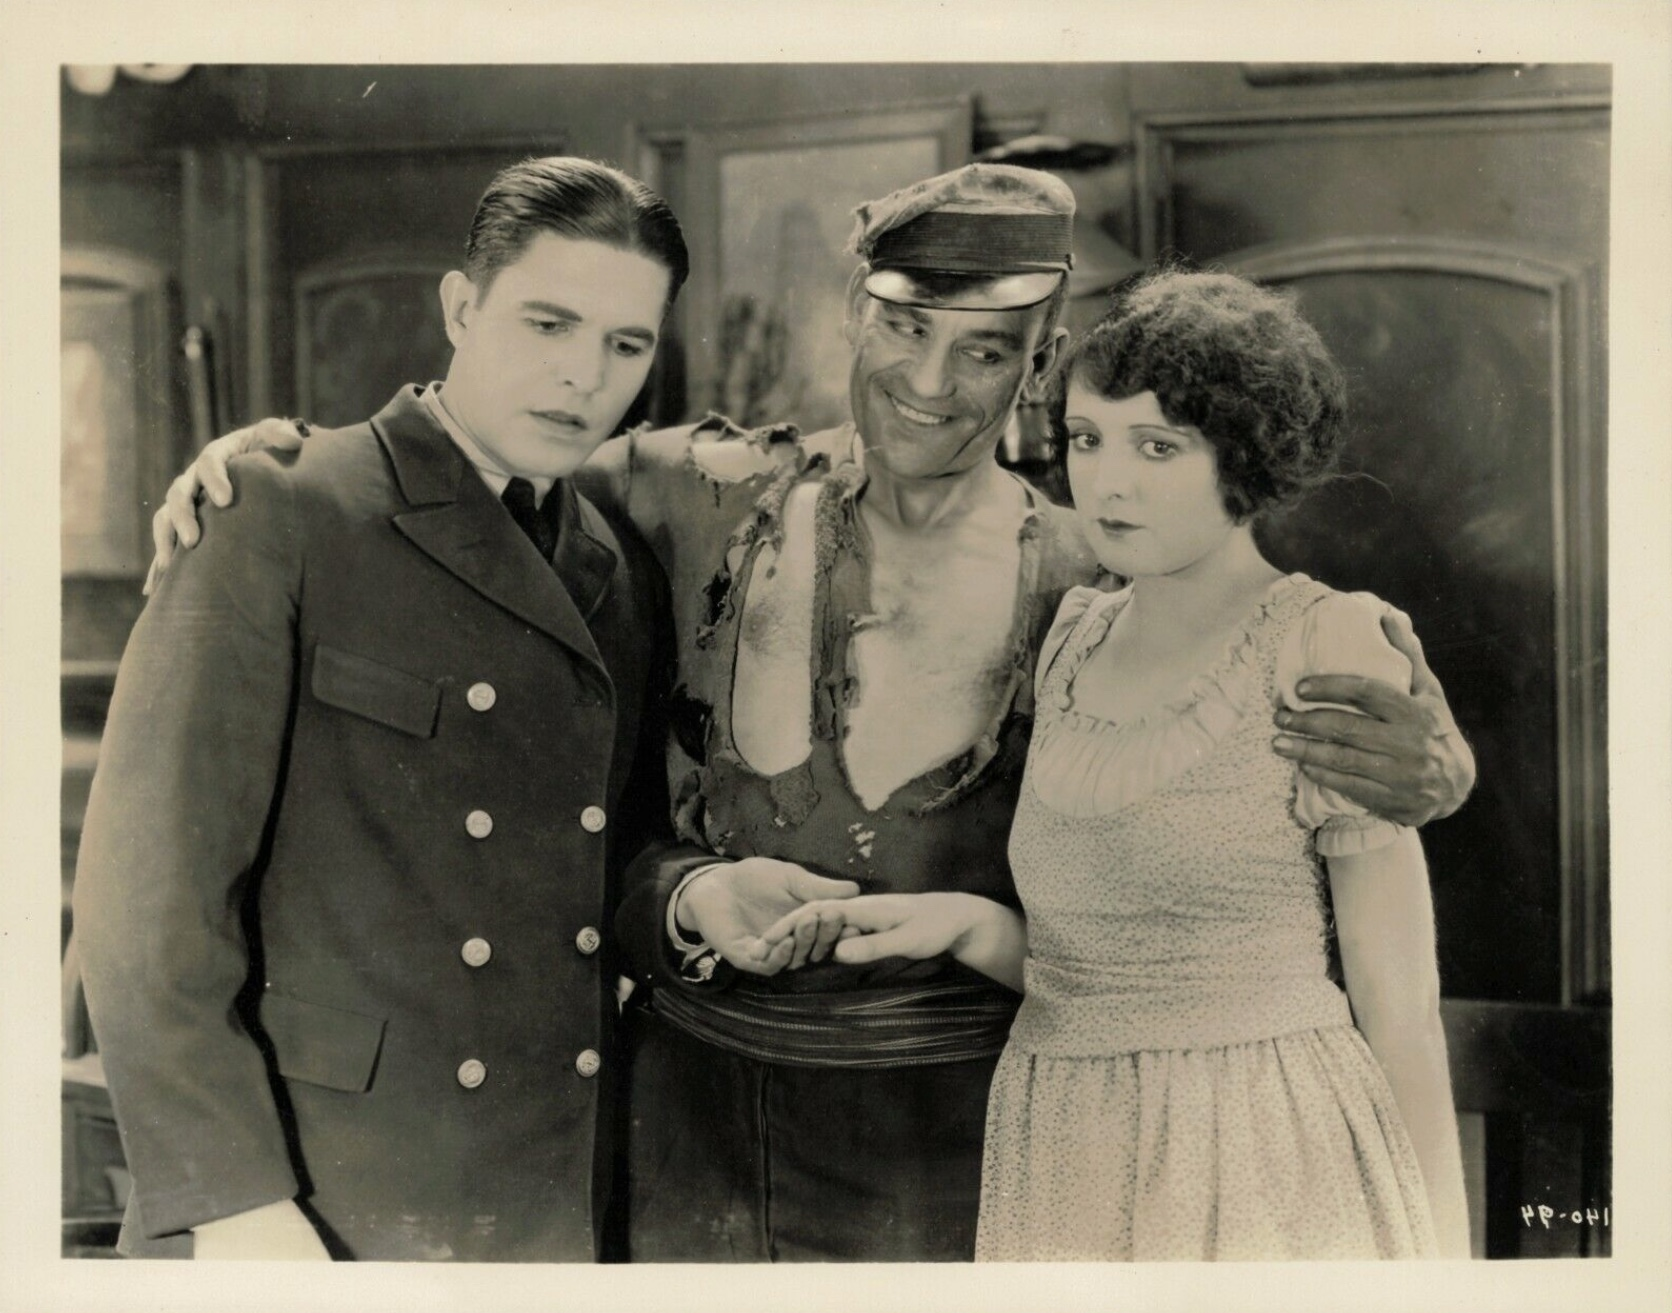 Lon Chaney, Billie Dove, and Malcolm McGregor in All the Brothers Were Valiant (1923)